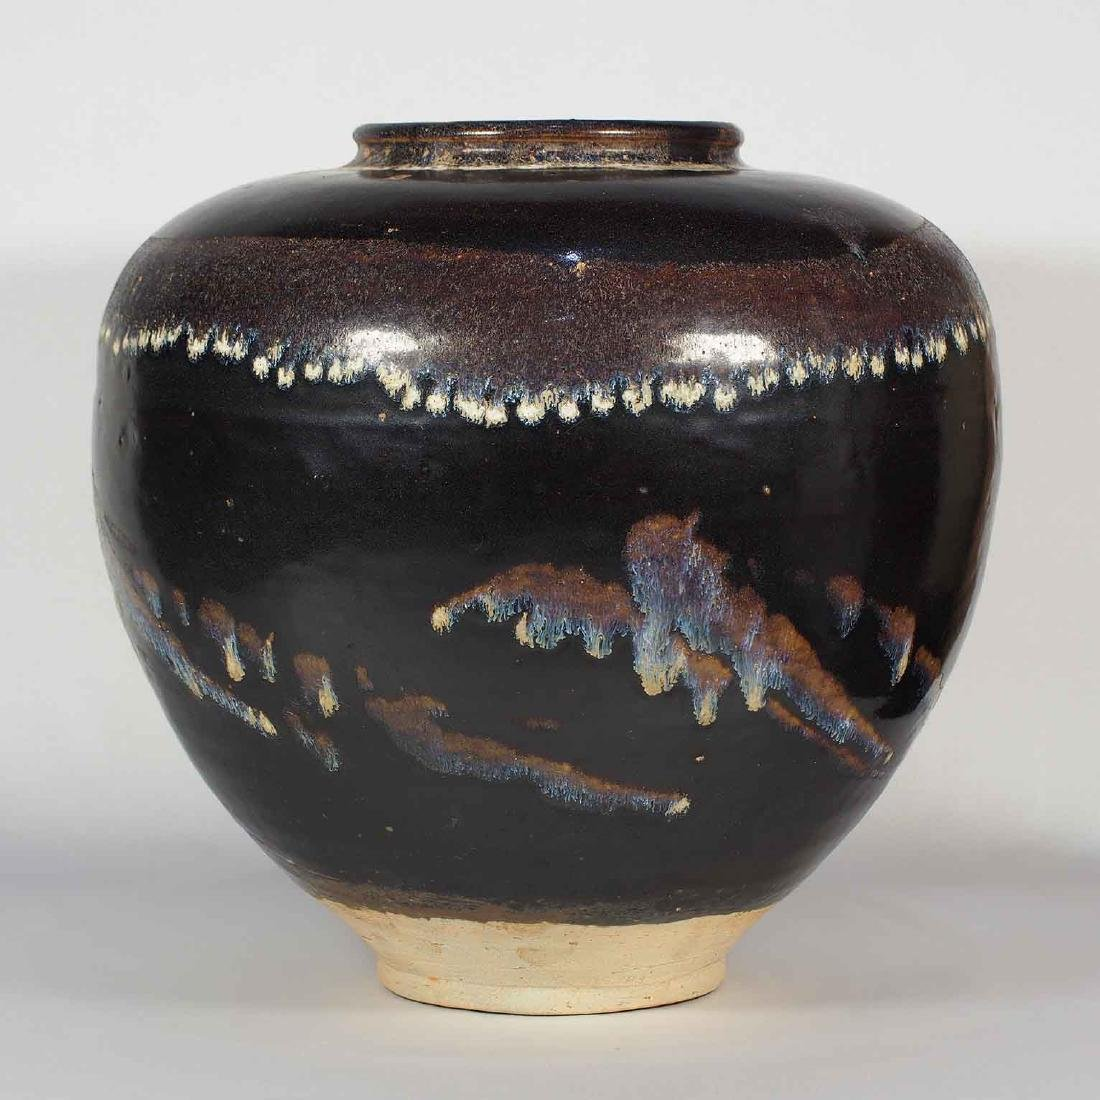 Large Jizhou Jar with Abstract Design, Southern Song